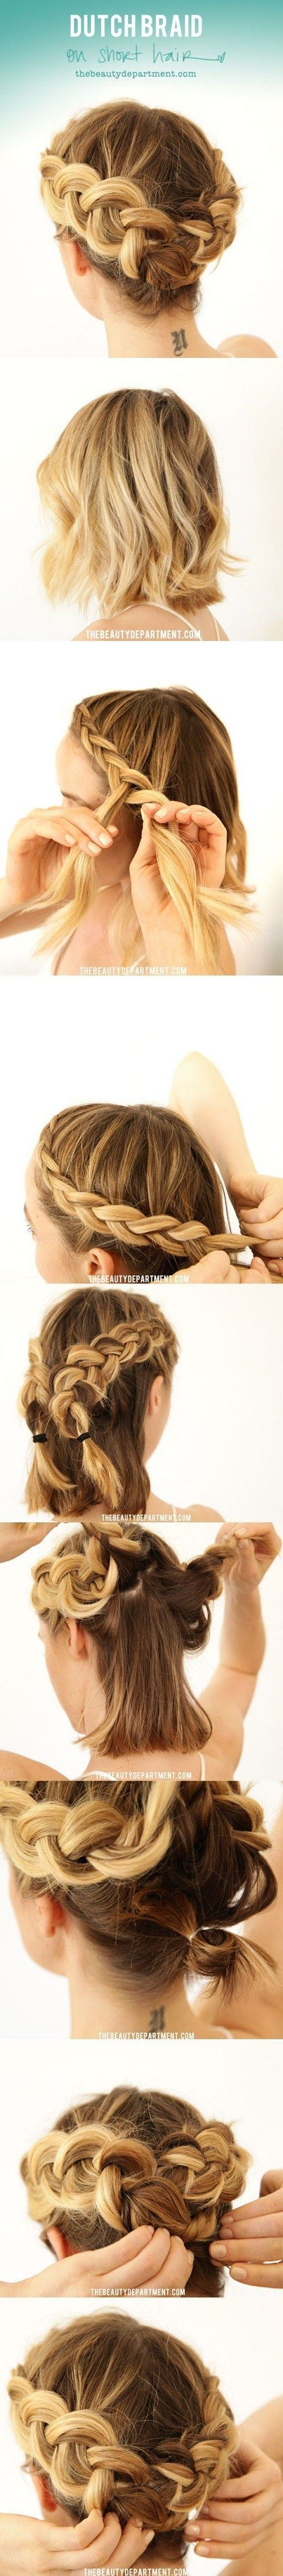 Crown Braid For Bob Length Hair Tutorial therighthairstyle...